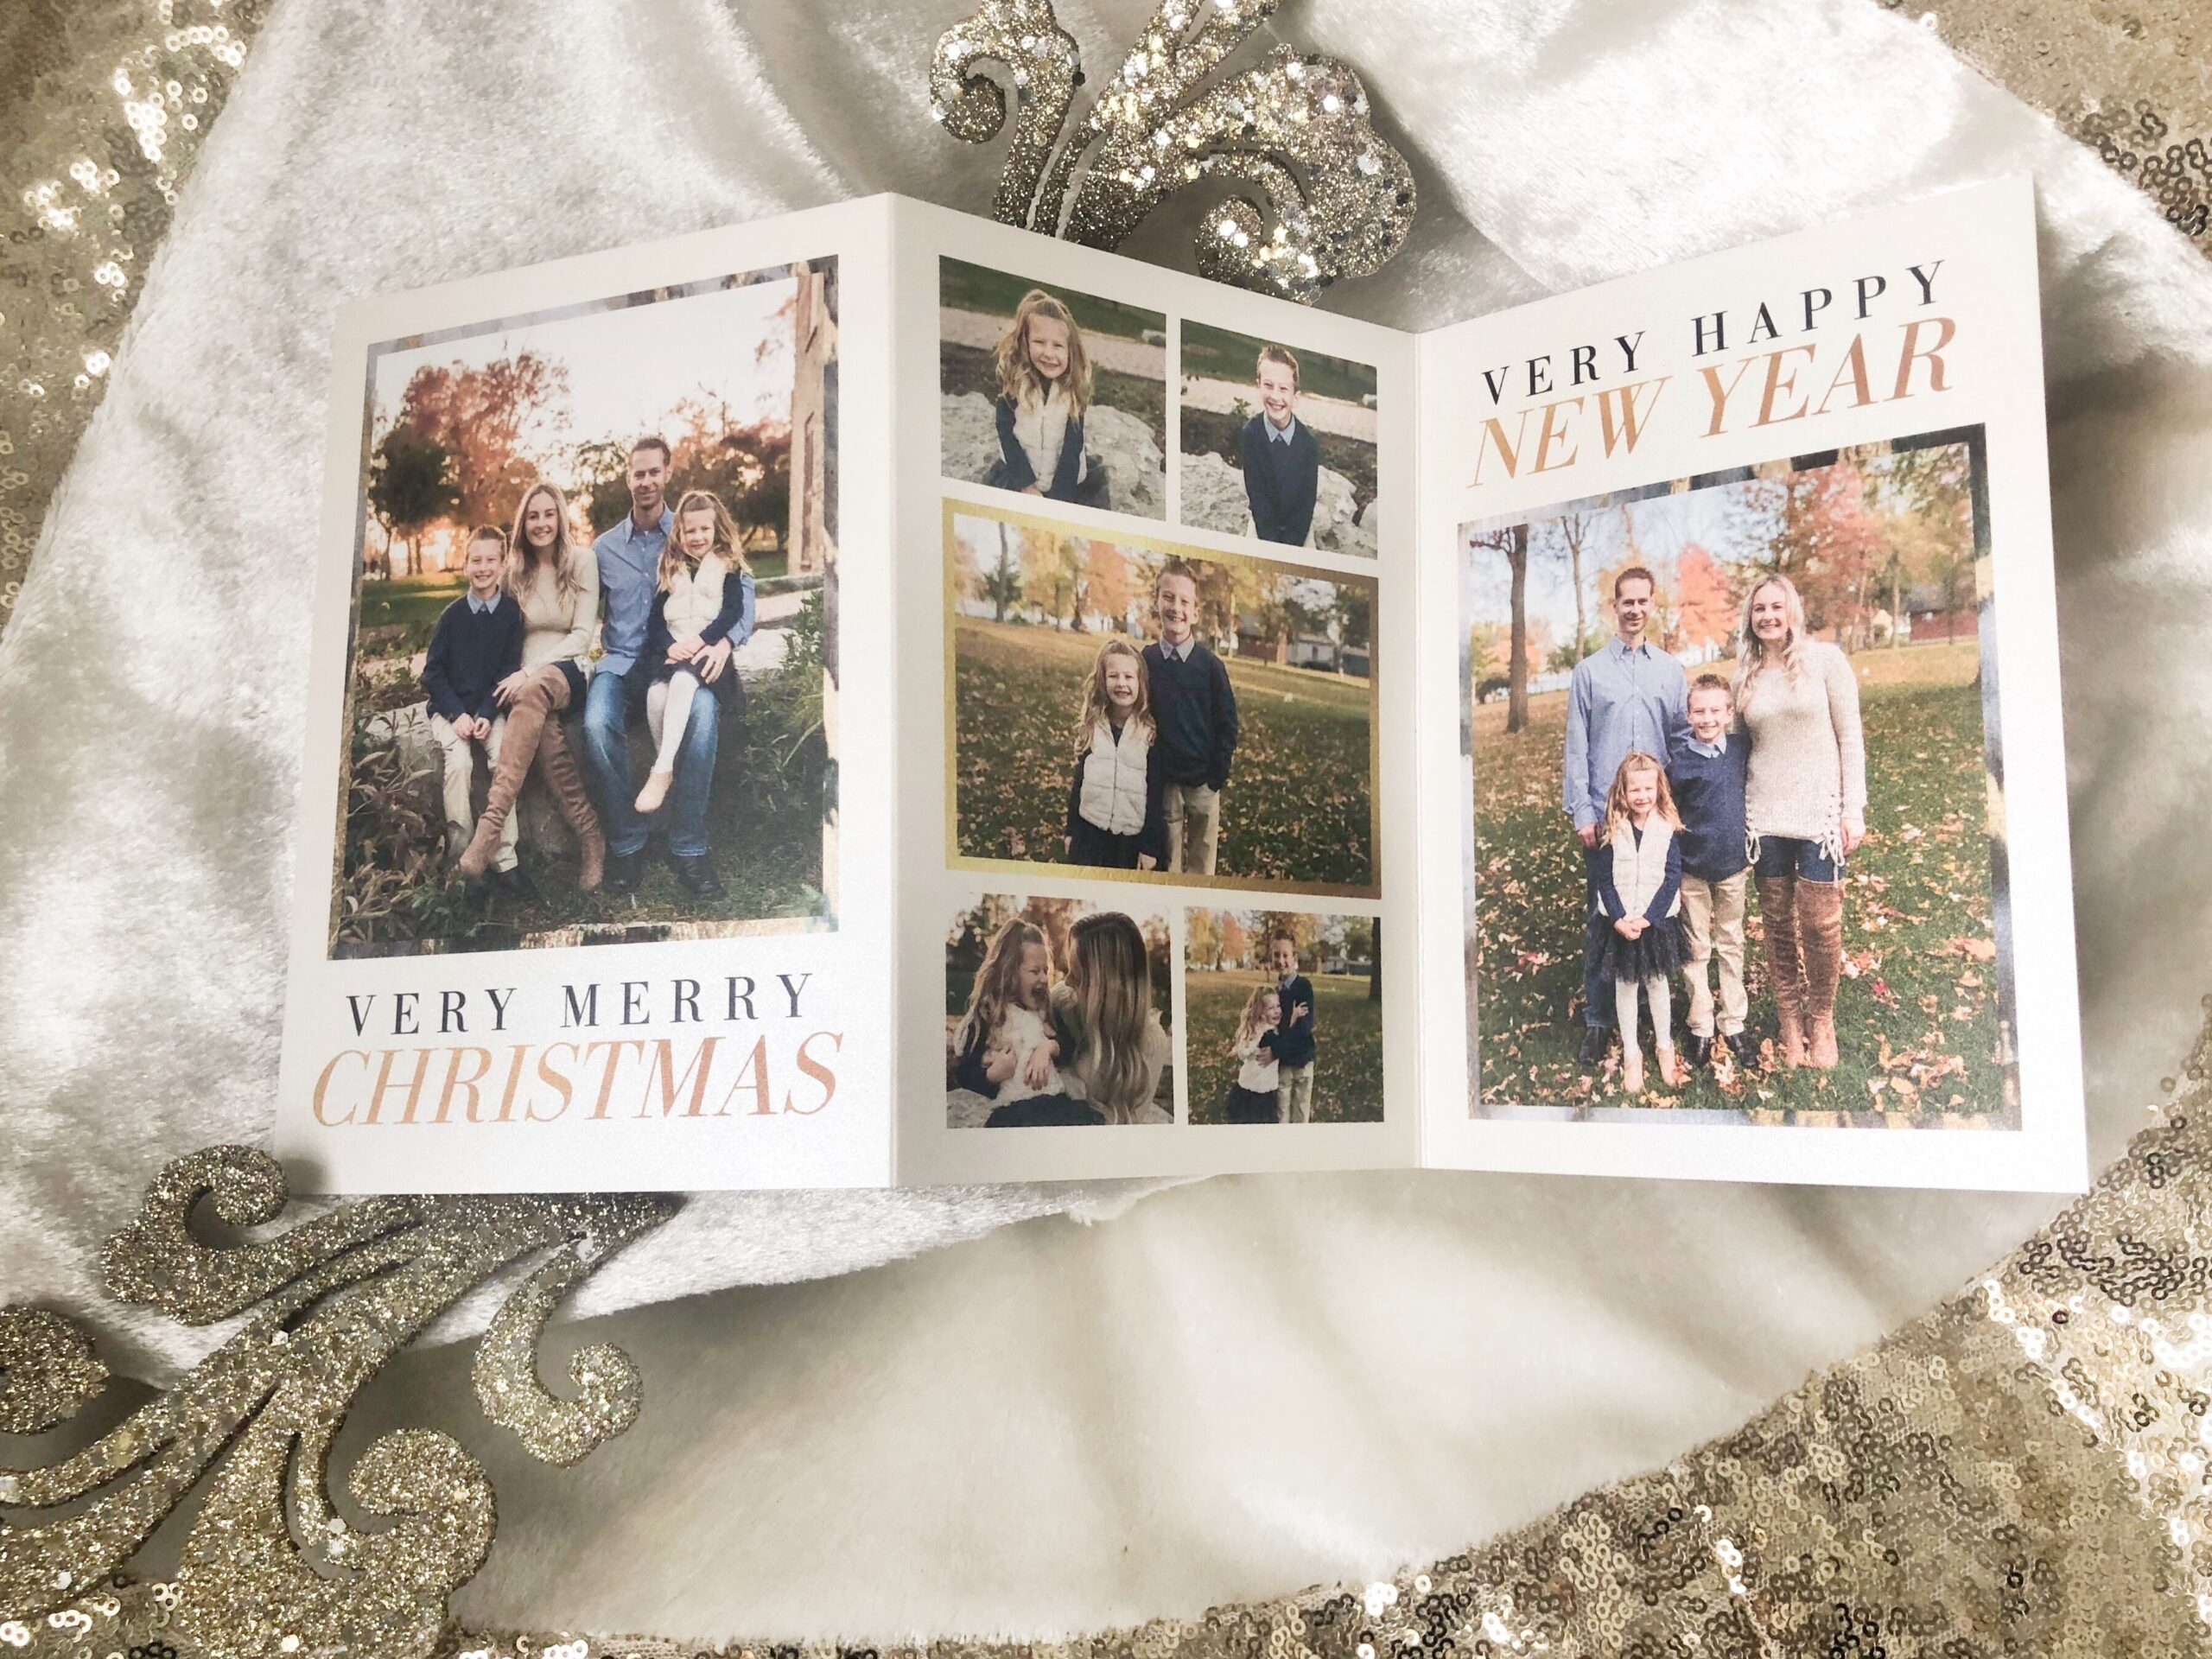 Our 2019 Holiday Cards from Tiny Prints